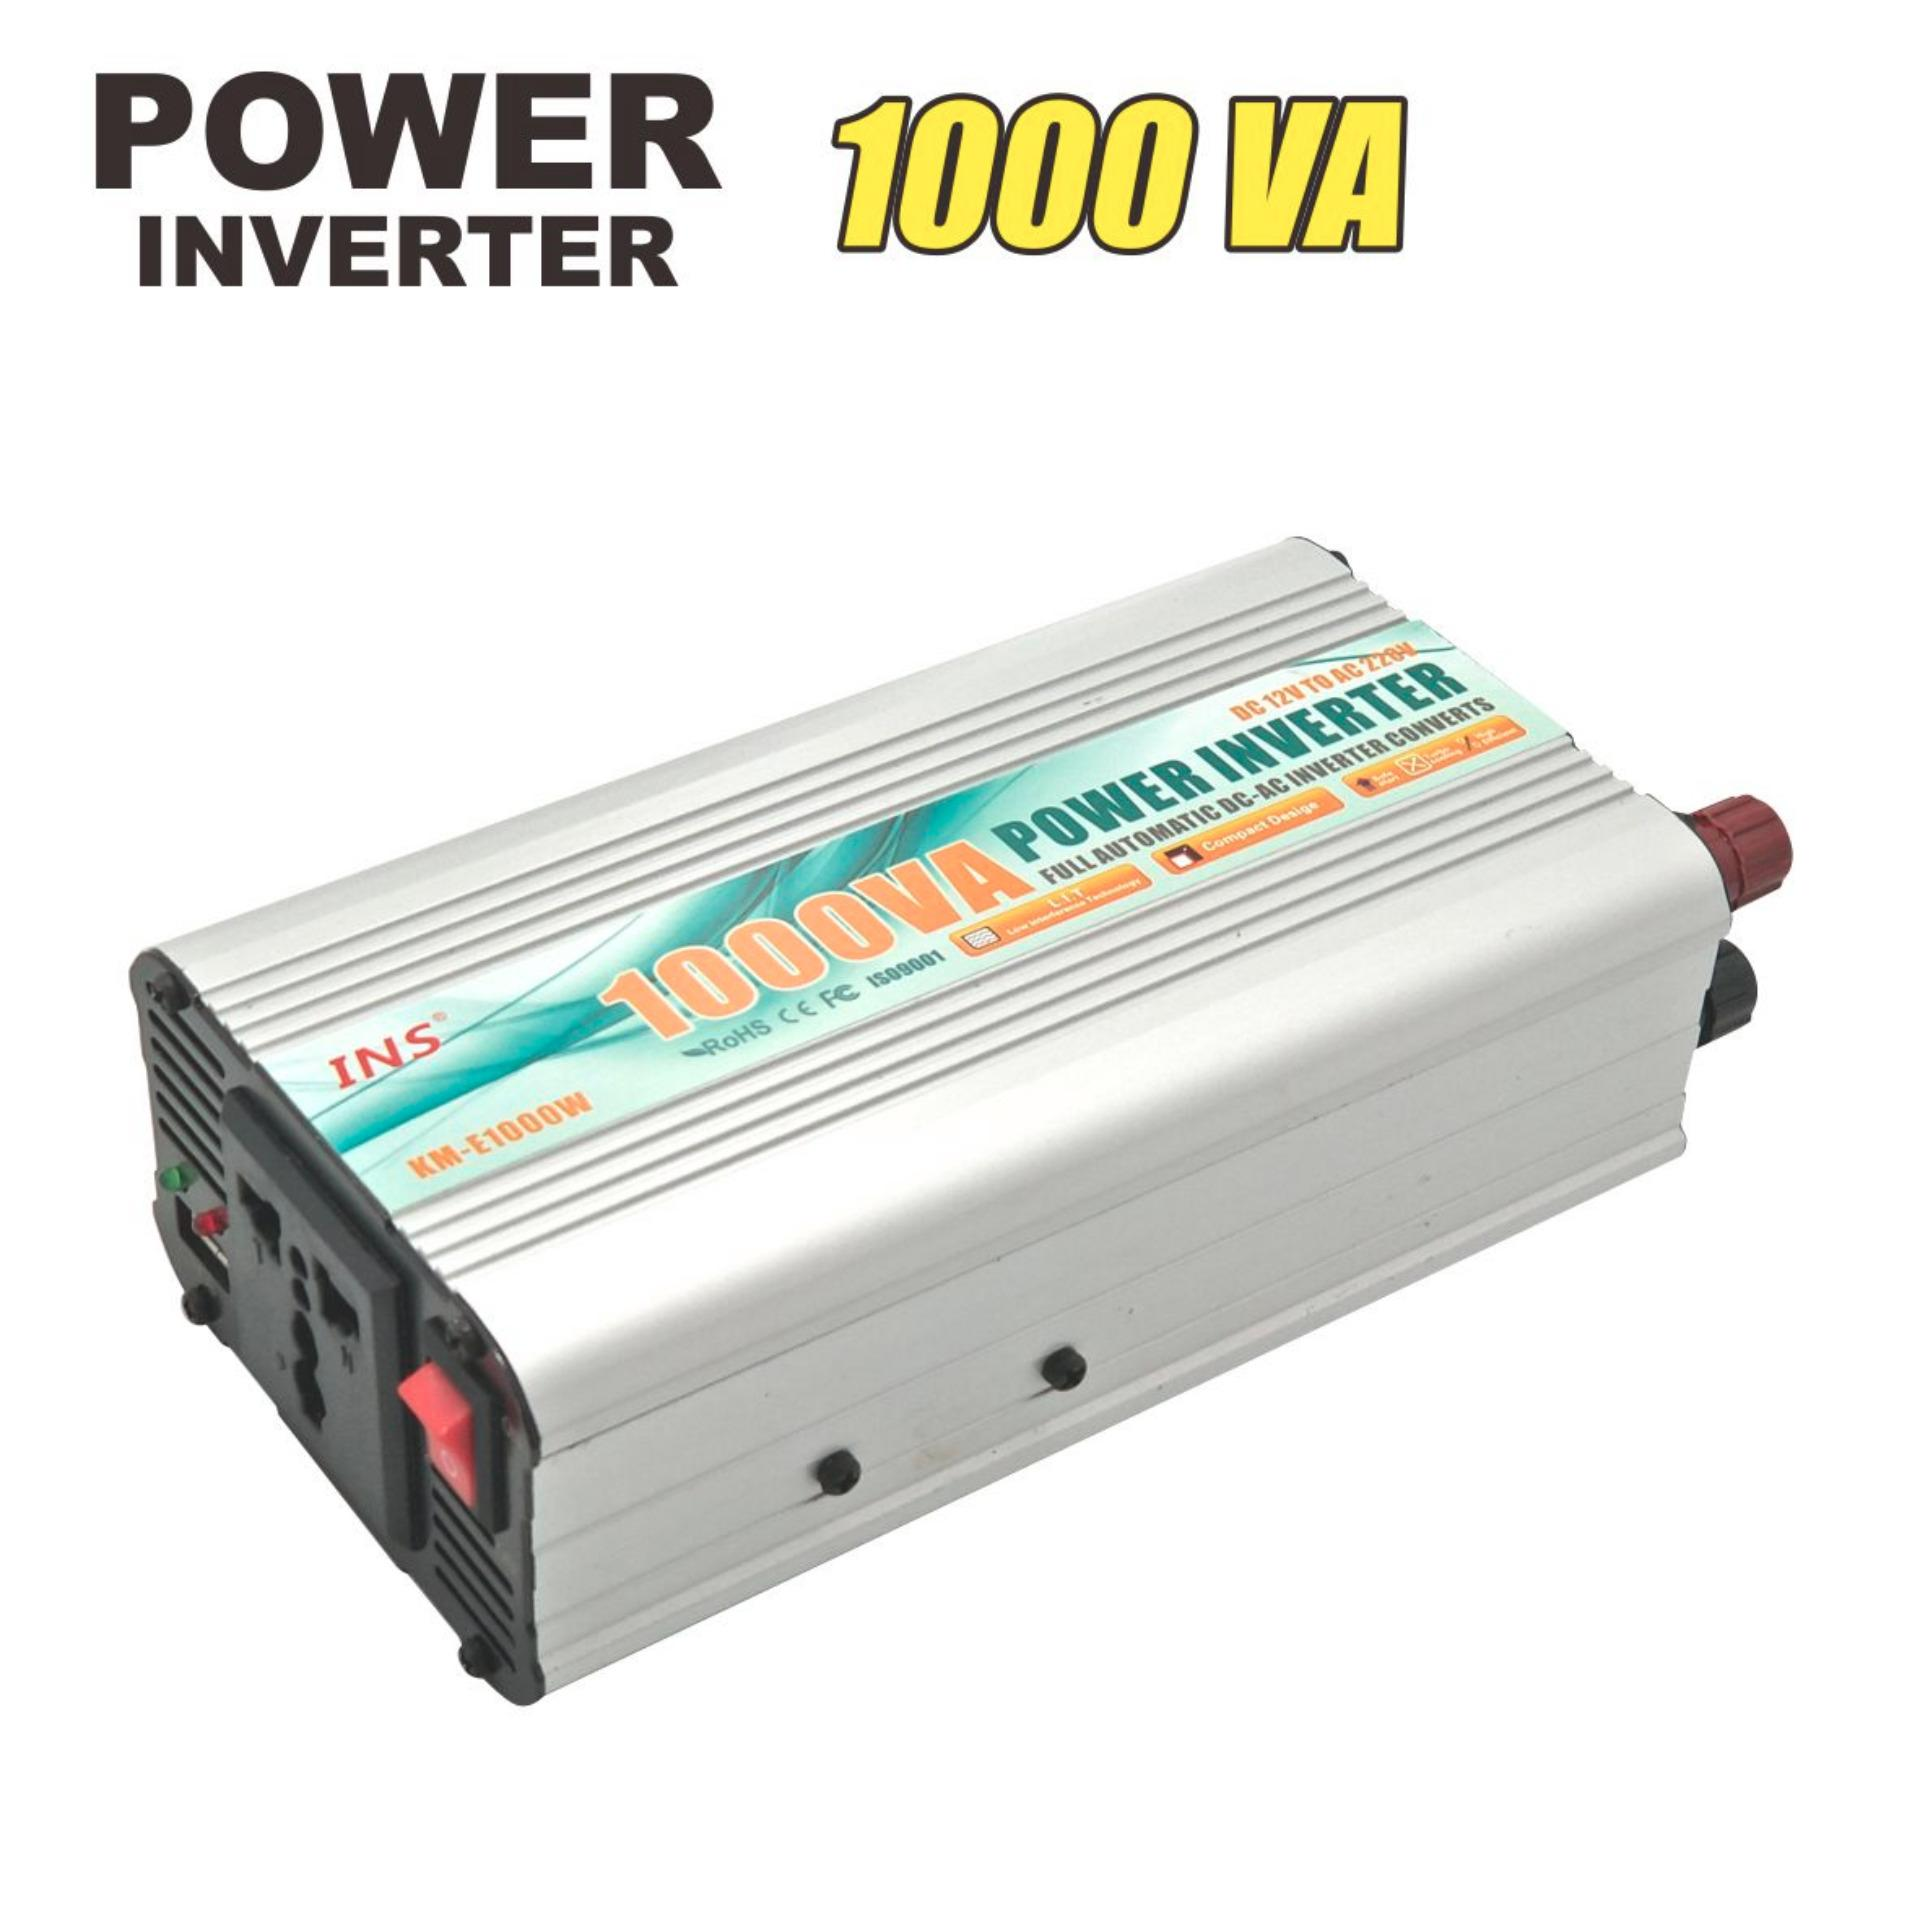 WEITECH DC 12V TO AC 220V 1000W Power Inverter